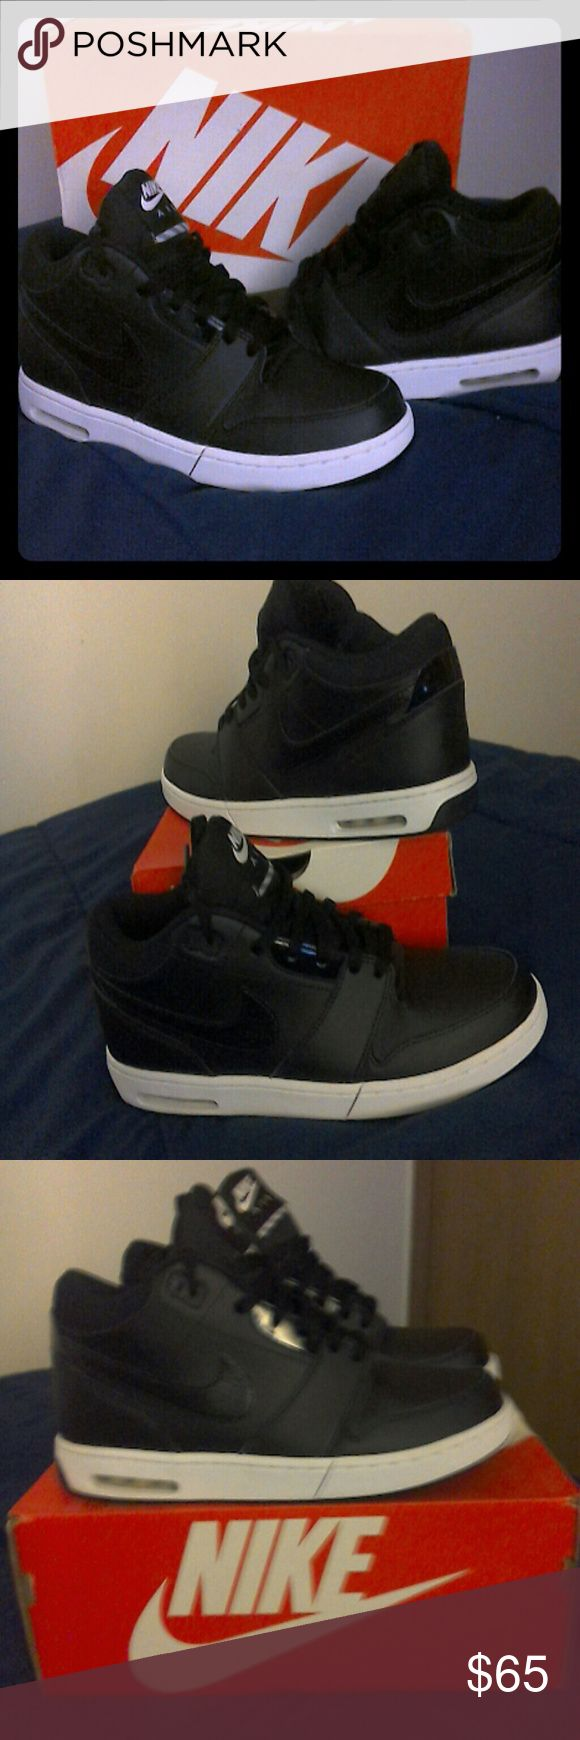 Nike Air Stepback Mid top men's basketball worn only 2 times Nike Shoes Athletic Shoes